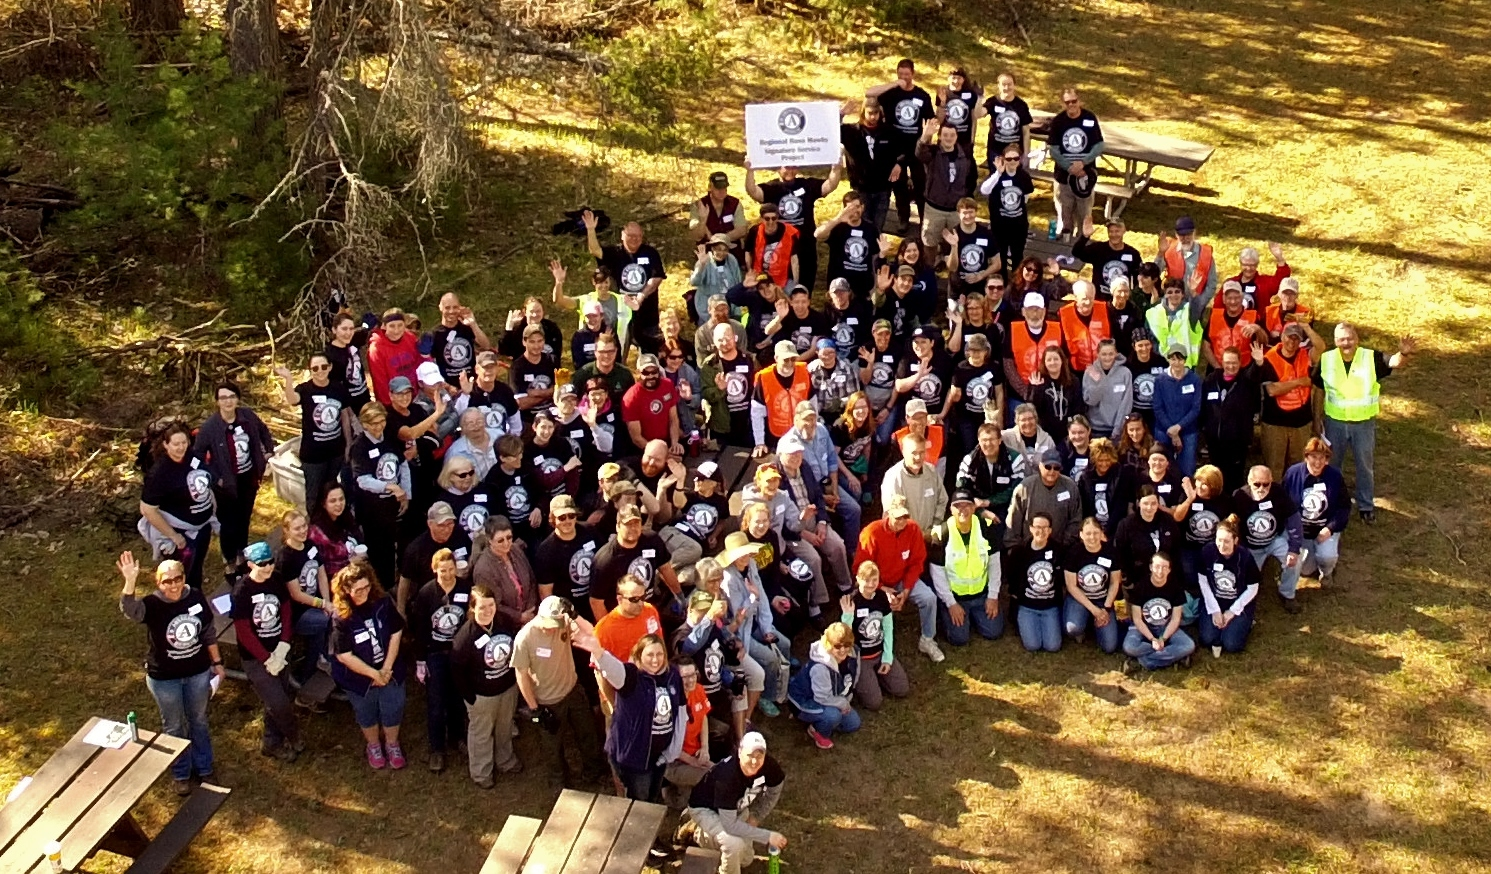 On May 20, 2016, a group of 150 AmeriCorps members and volunteers worked on the Discovery Center at the Pigeon River Country State Forest.